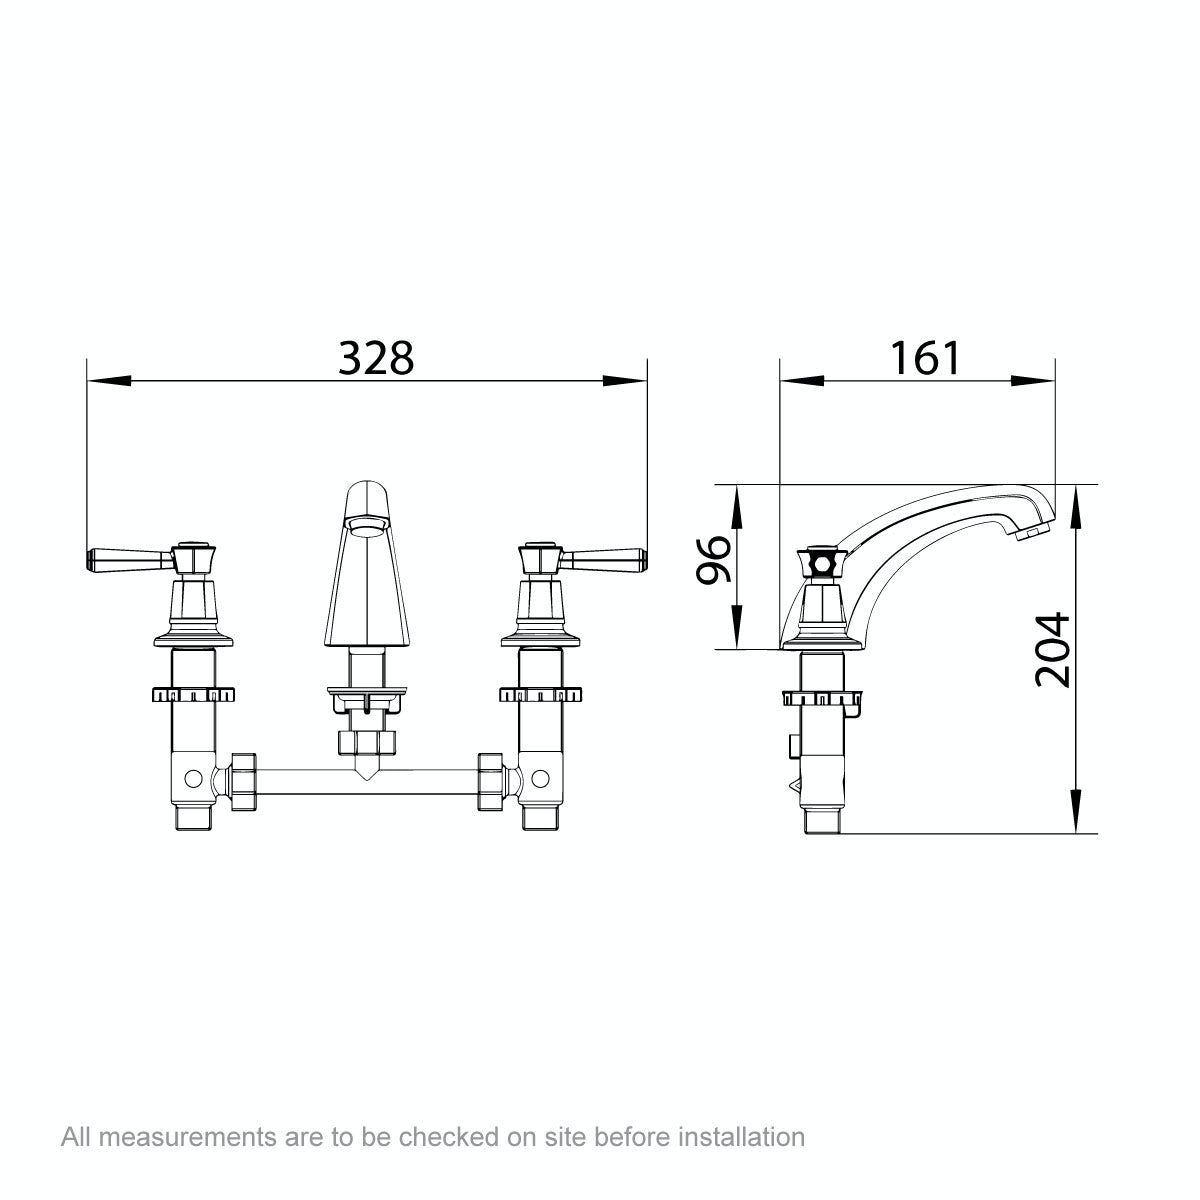 Dimensions for The Bath Co. Beaumont lever 3 hole basin mixer tap